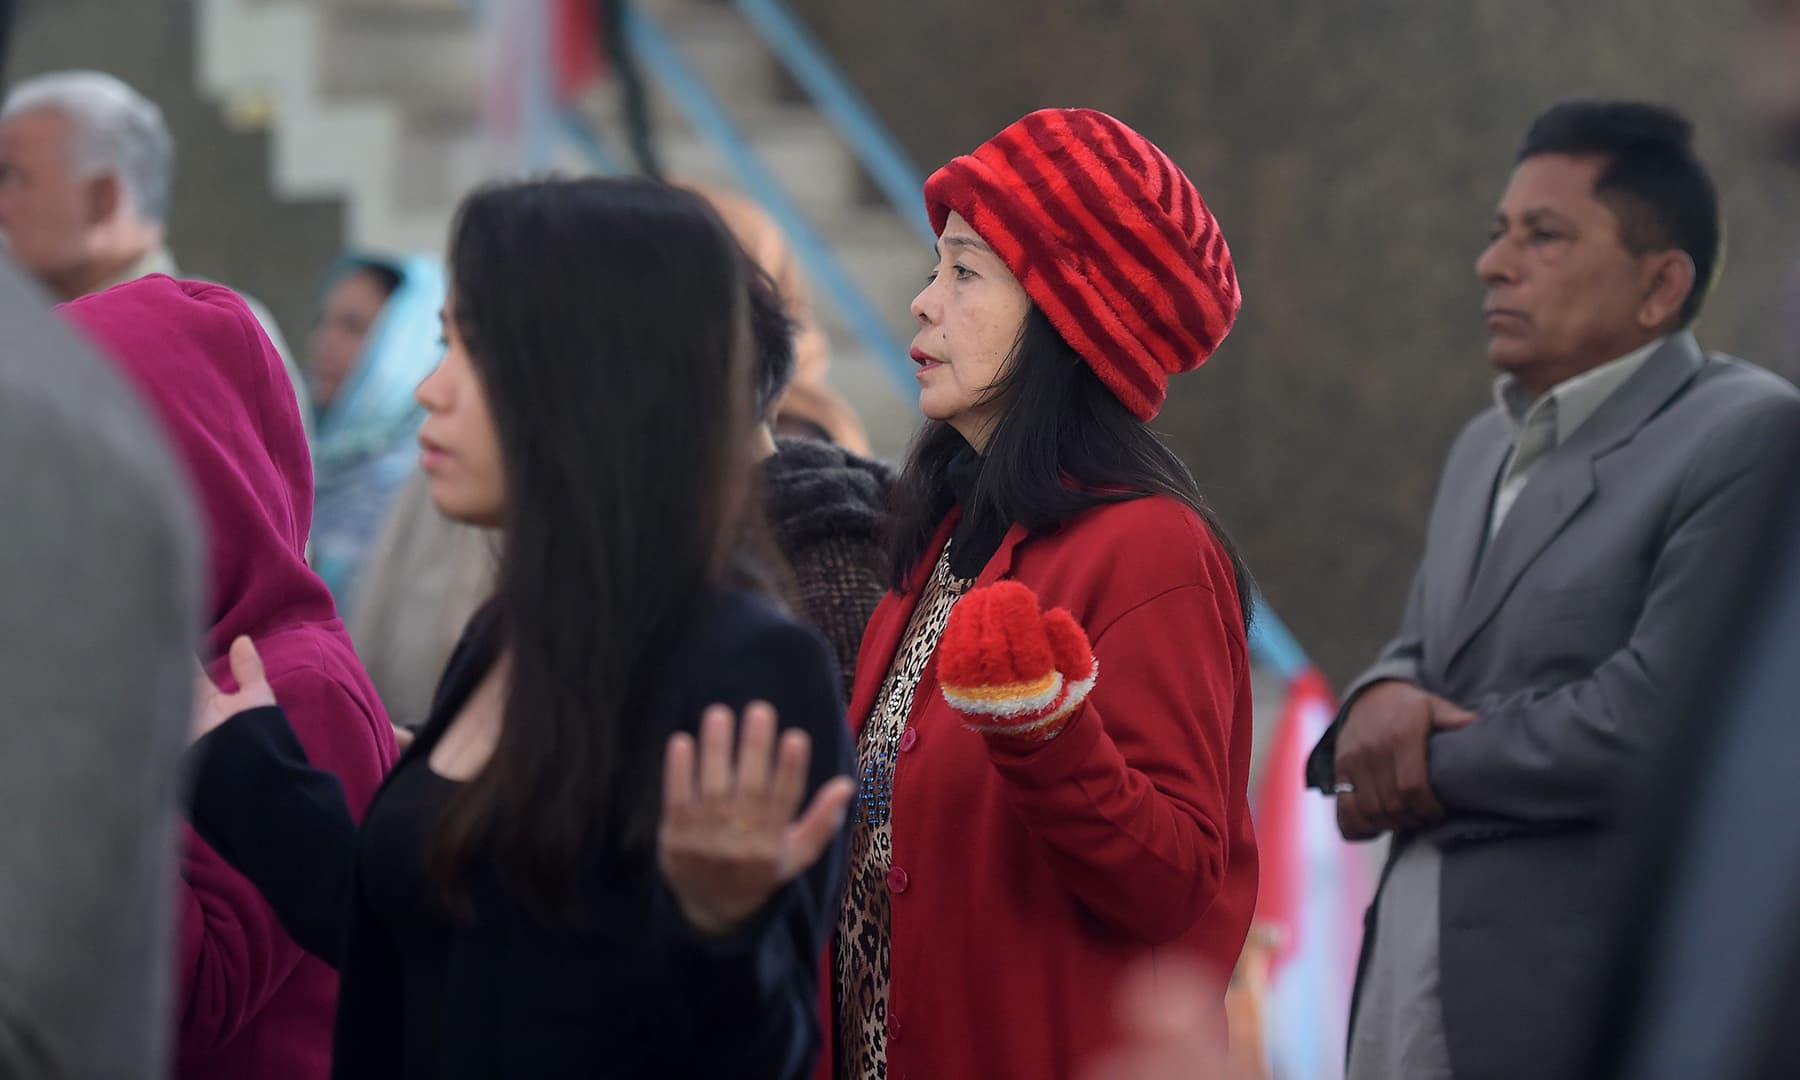 Christian devotees attend Christmas Day prayers at Fatima Church in Islamabad on December 25. — AFP